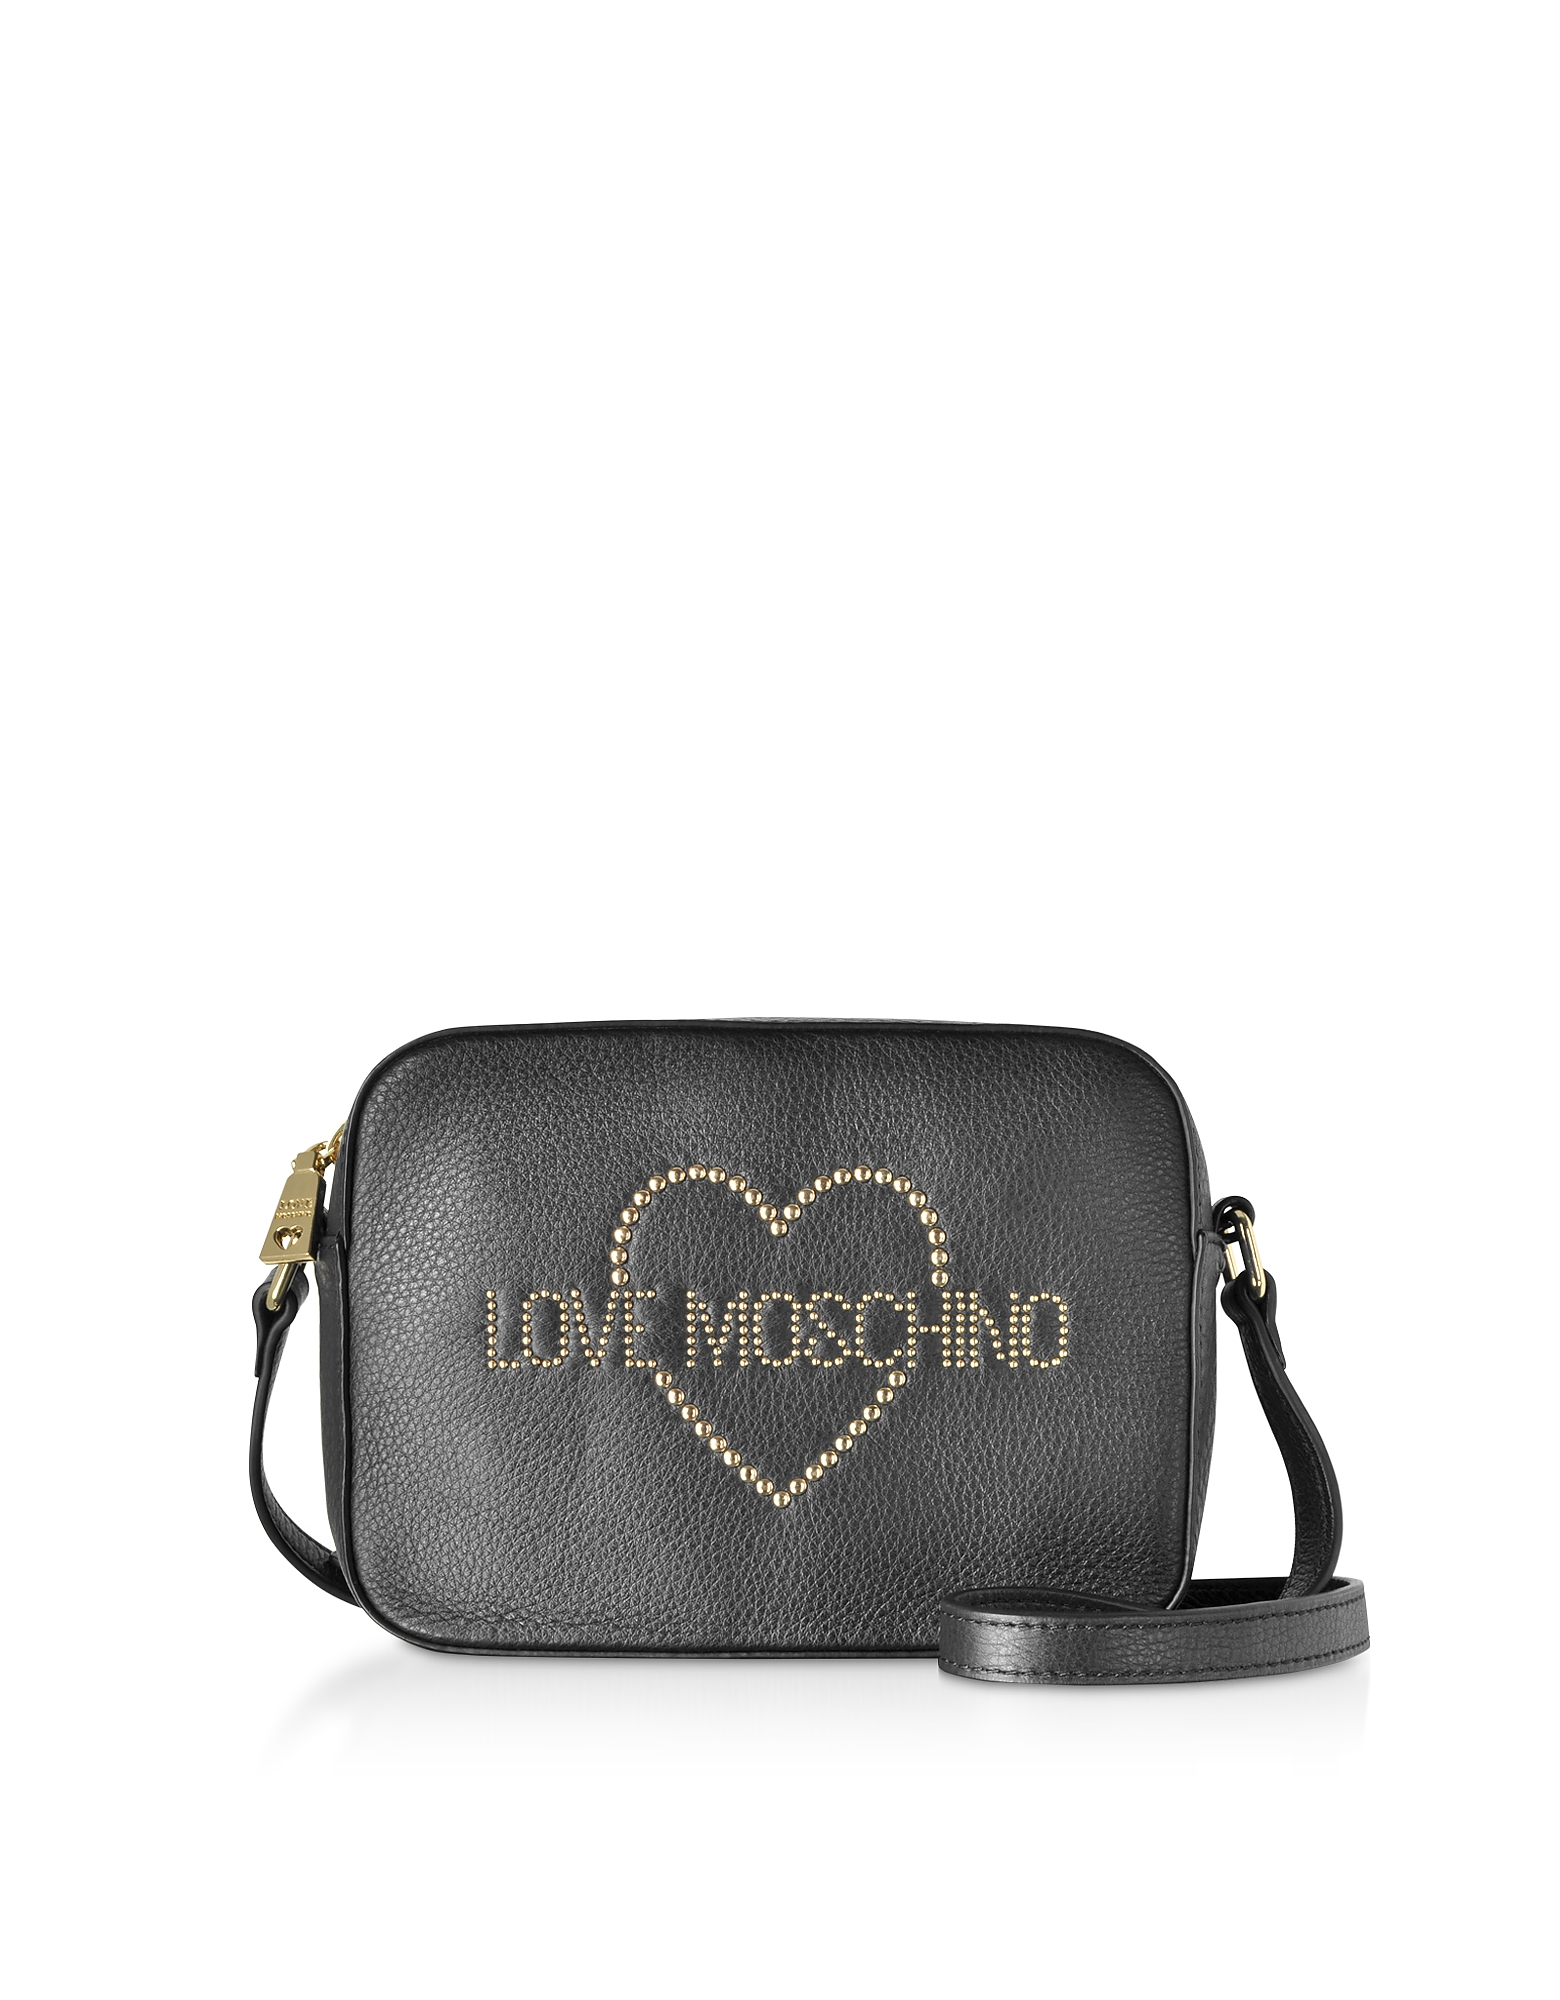 Love Moschino Designer Handbags, Small Leather Crossbody bag w/ Golden Studs